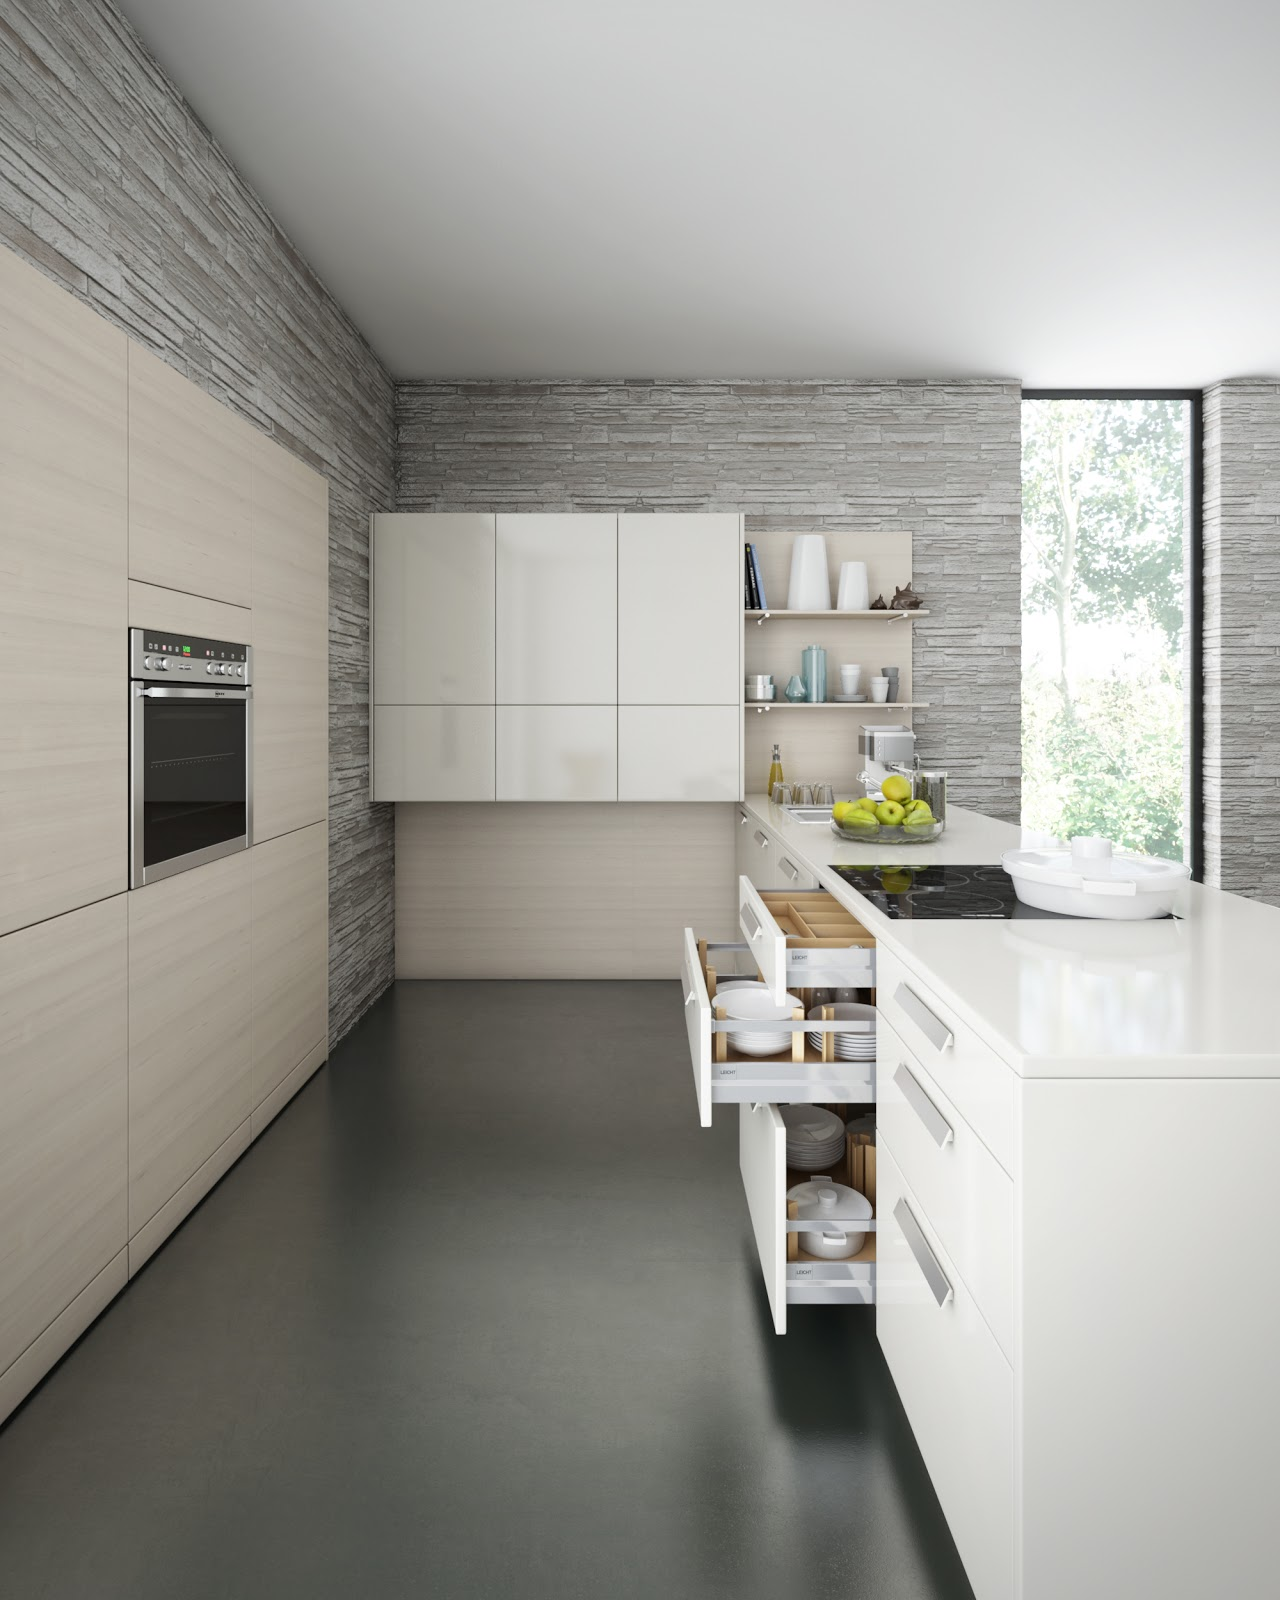 Leicht Kitchen Through CGI